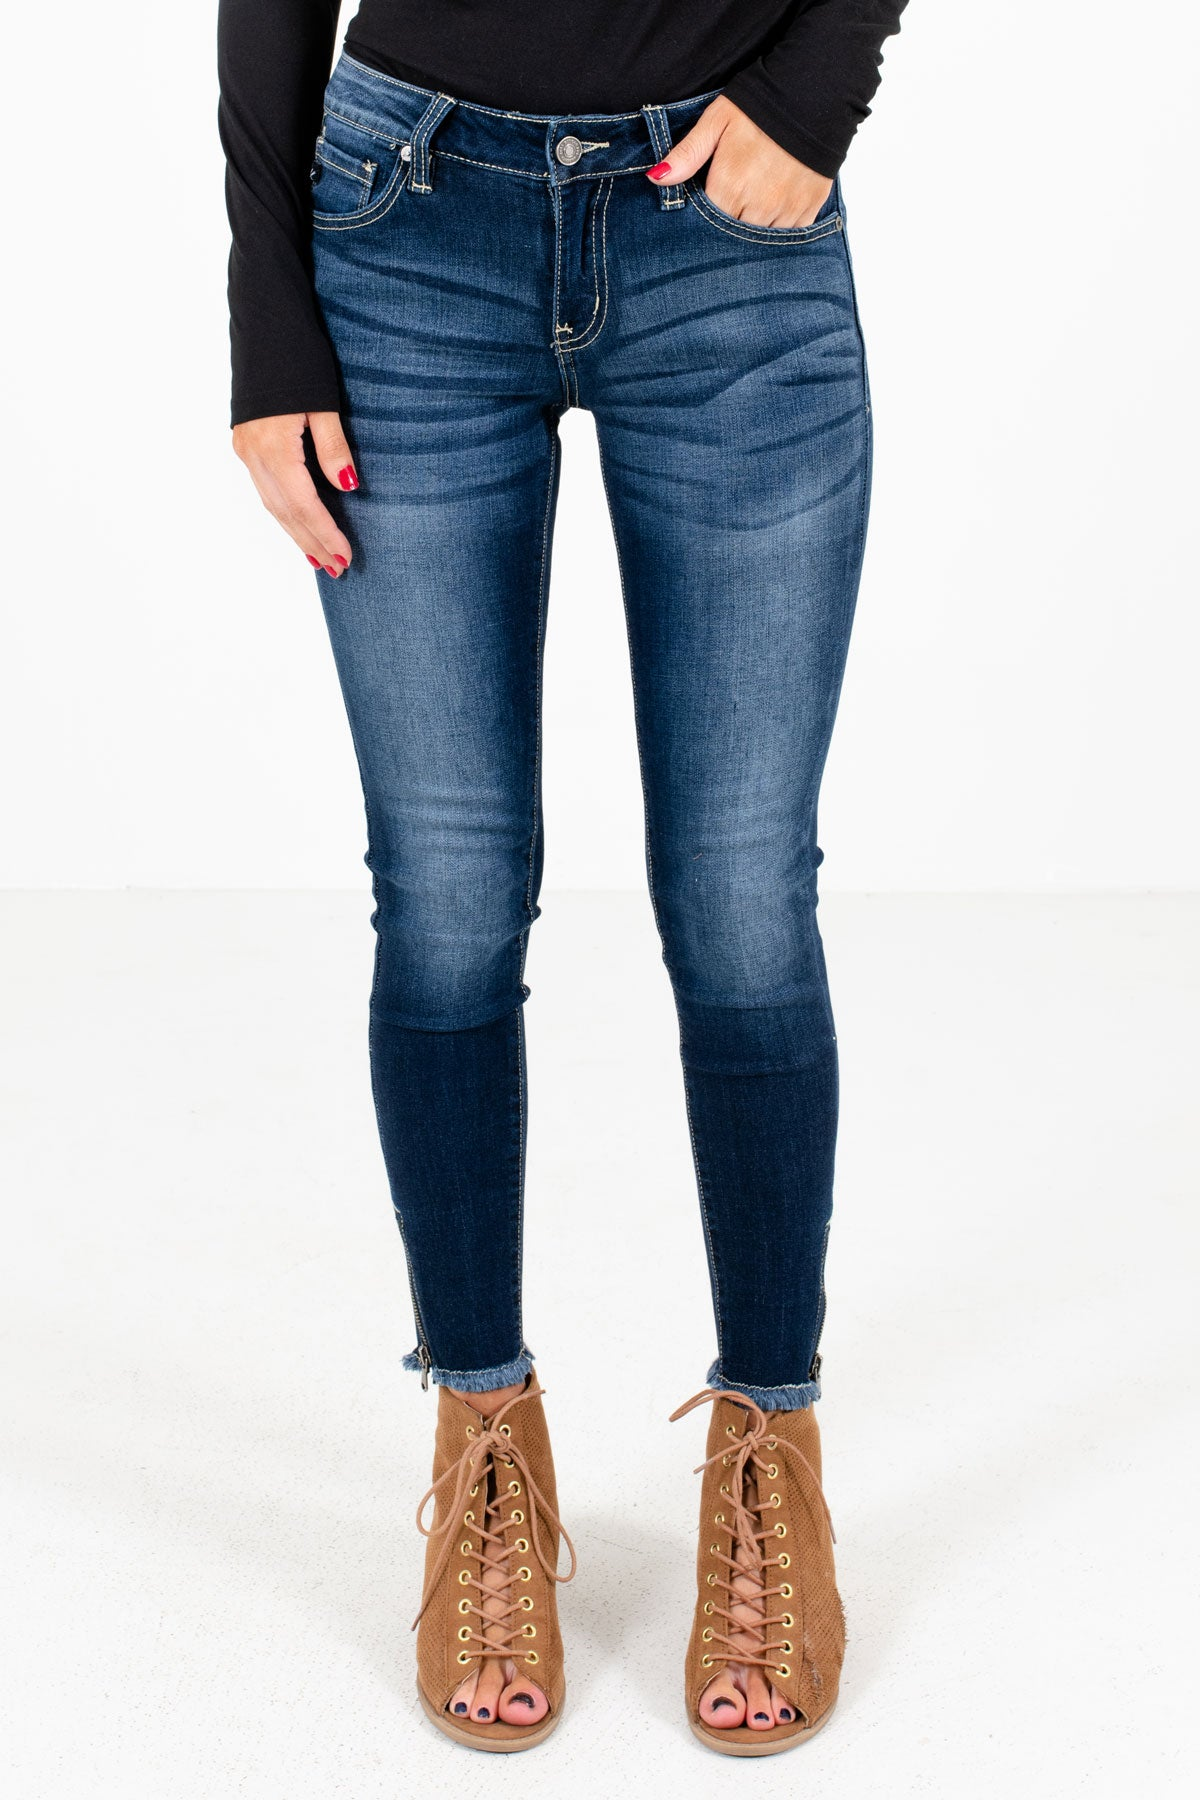 Dark Wash Blue KanCan Boutique Skinny Jeans for Women